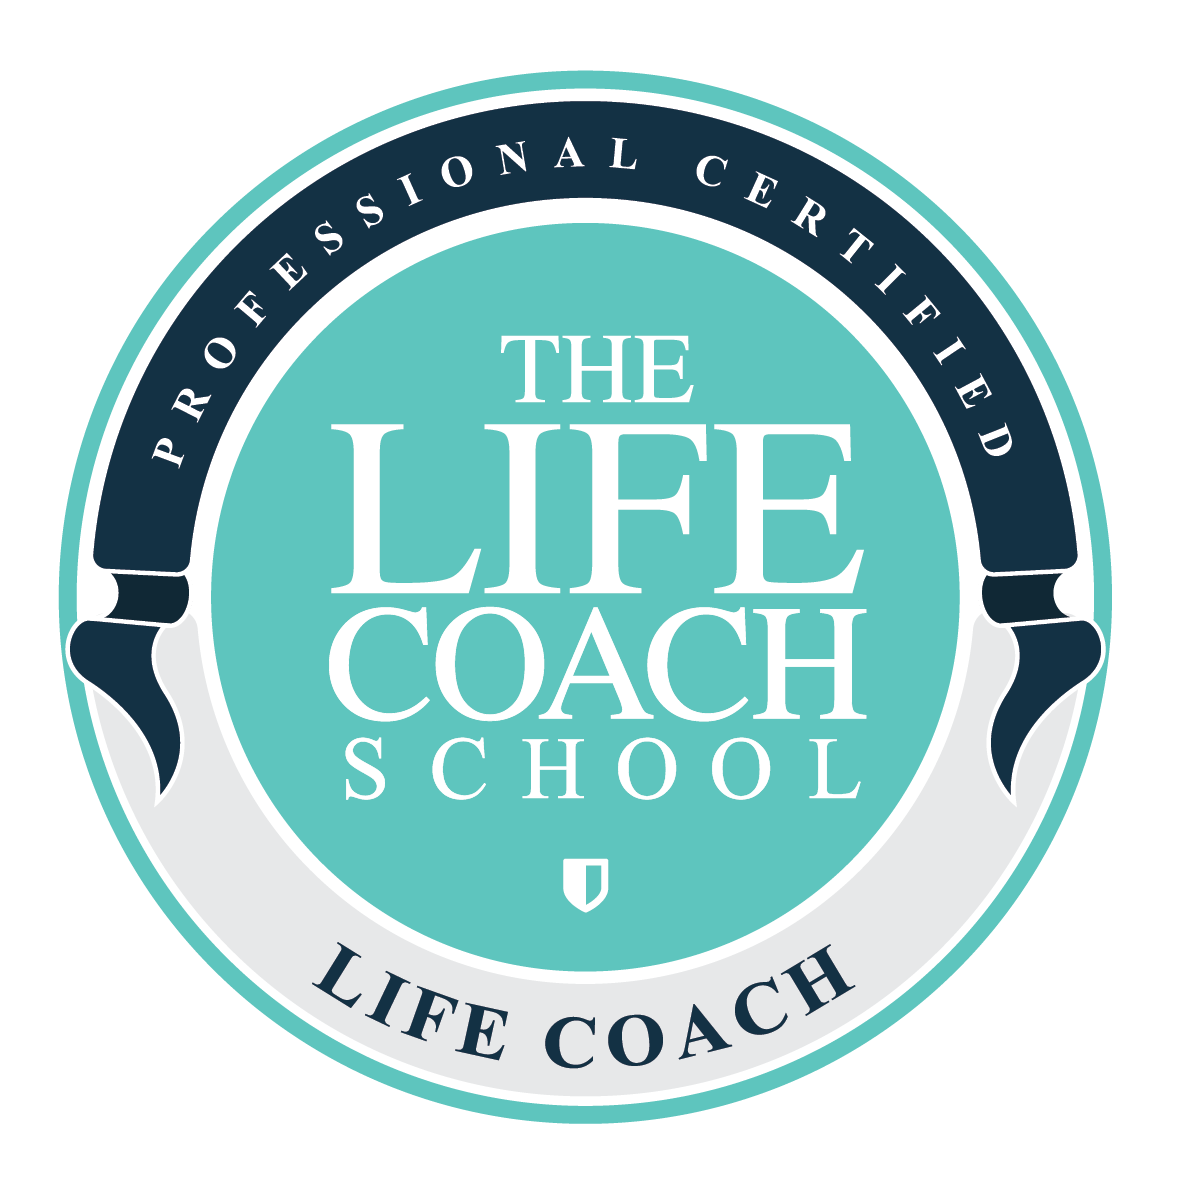 Certified Life Coach from The Life Coach School